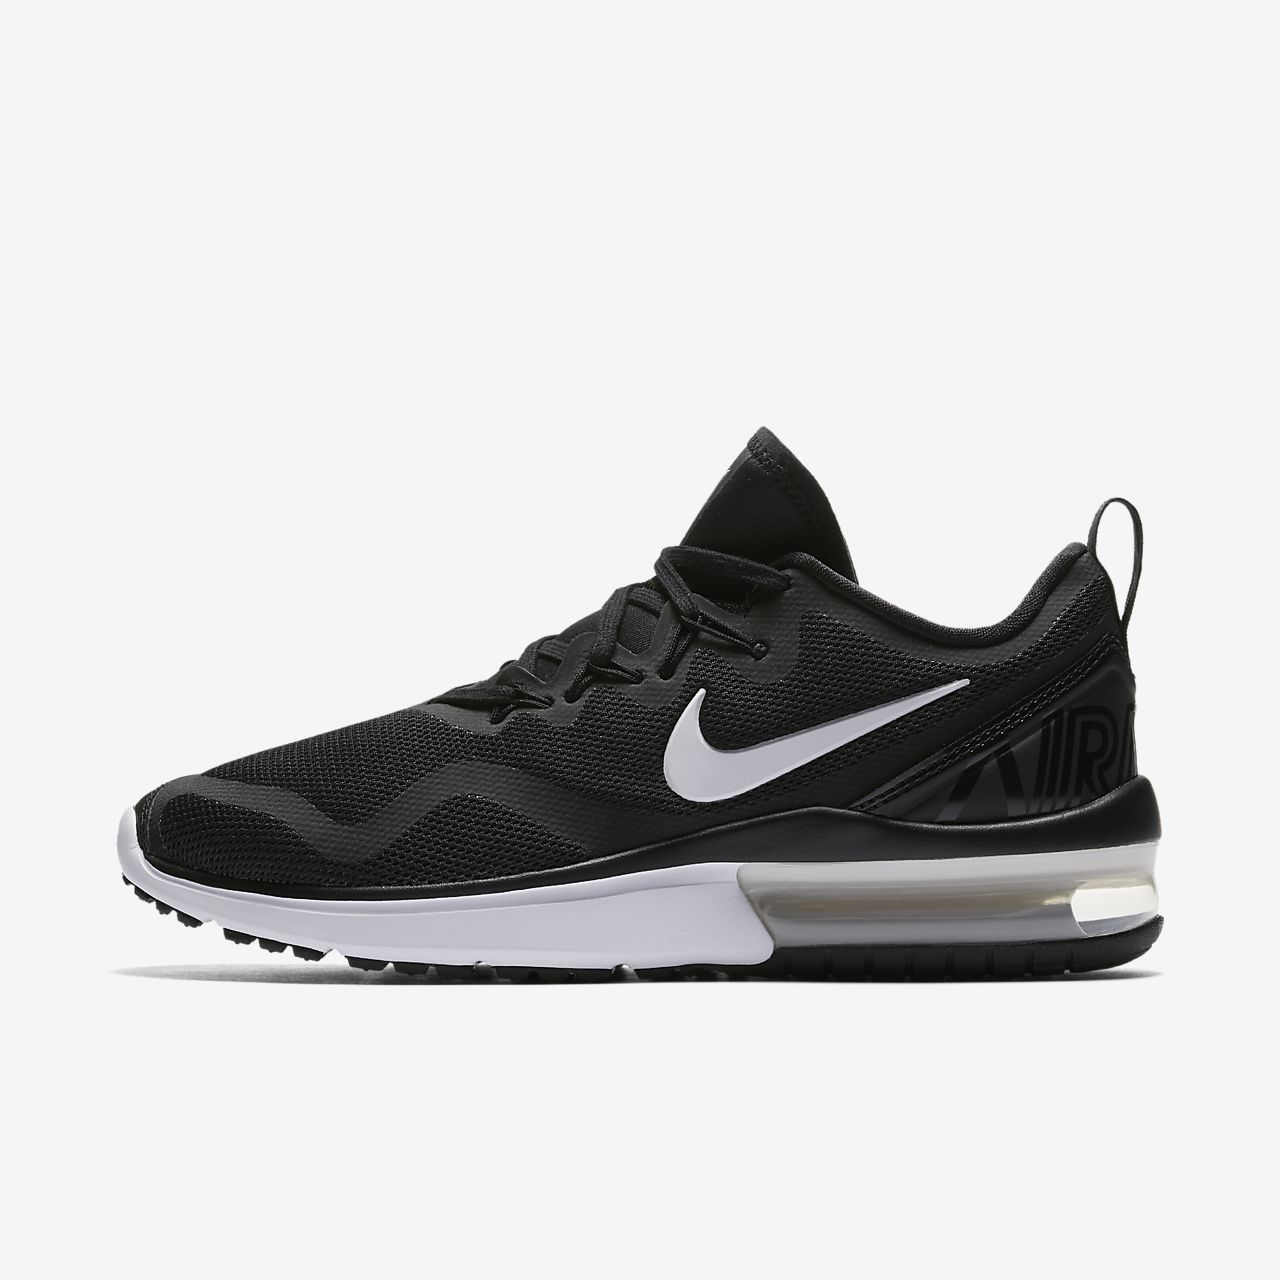 ... Nike Air Max Fury Women's Running Shoe